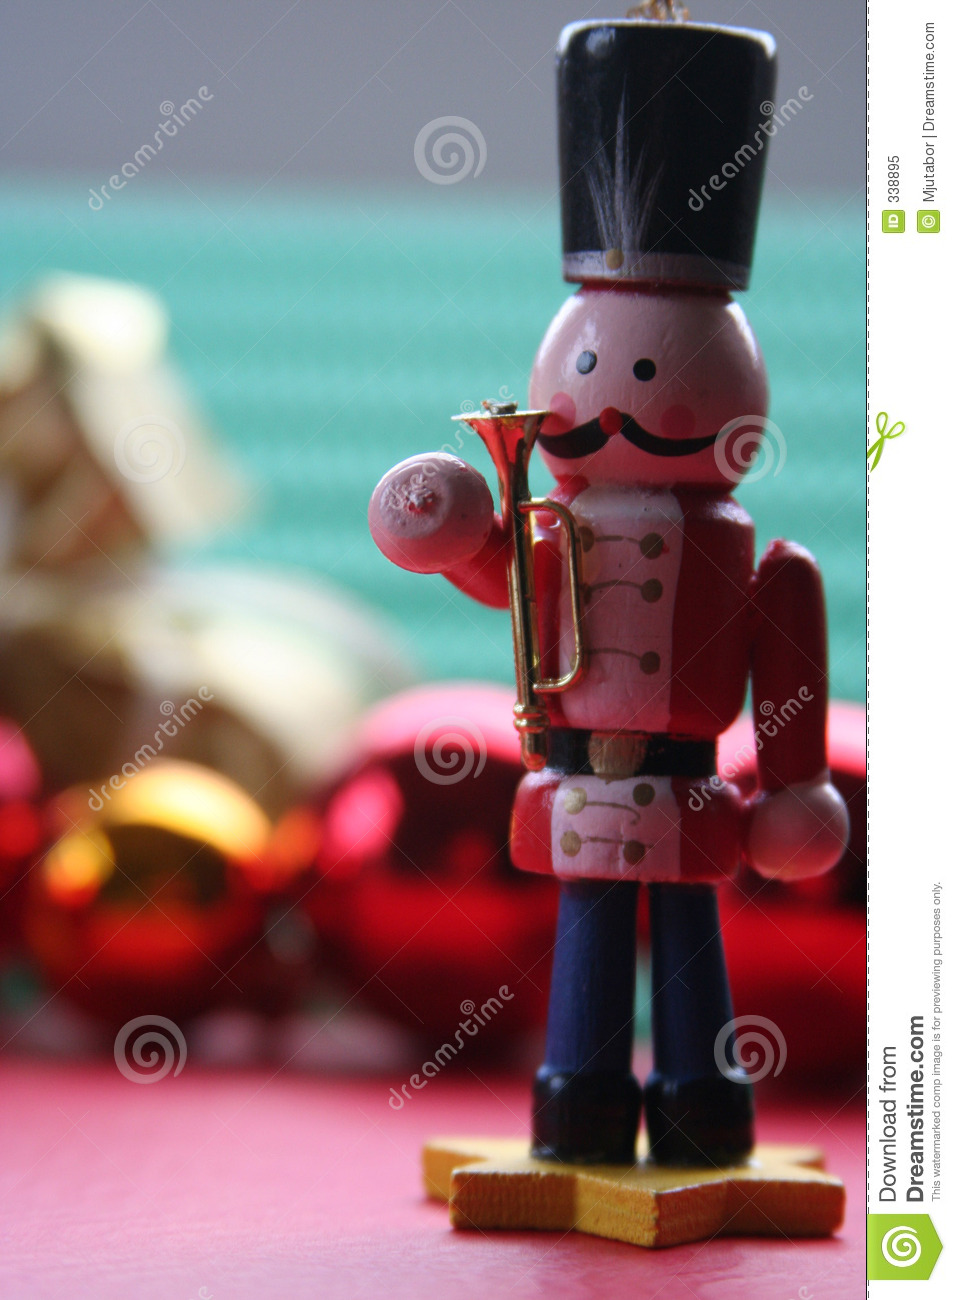 download christmas decoration toy soldier stock image image of antique wooden 338895 - Toy Soldier Christmas Decoration